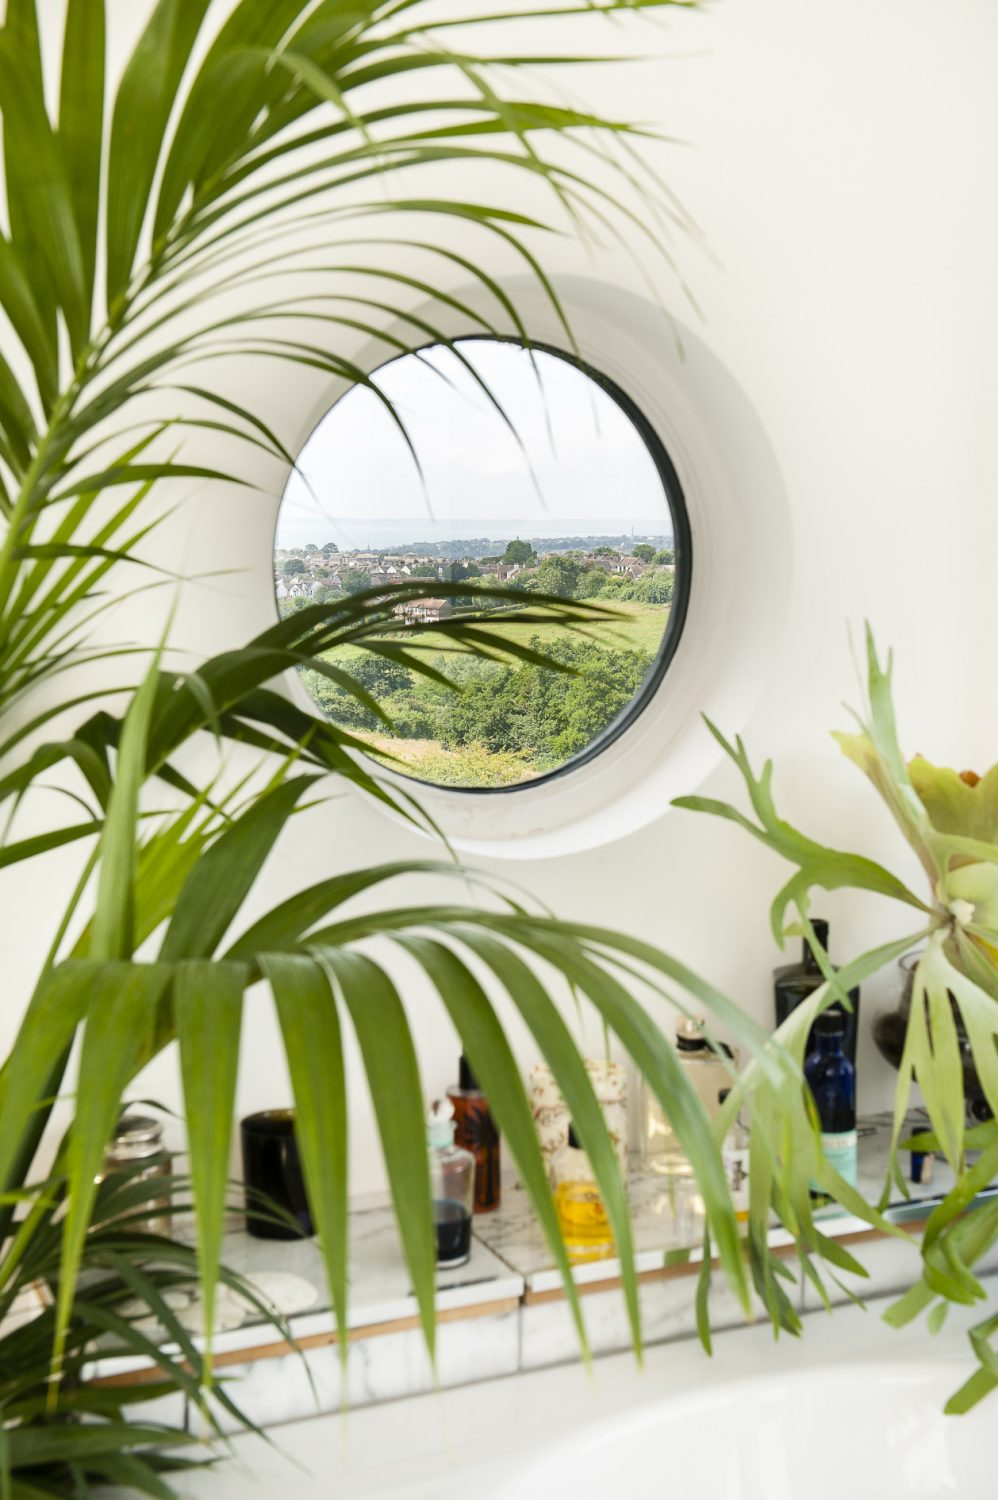 The view is framed by a porthole window